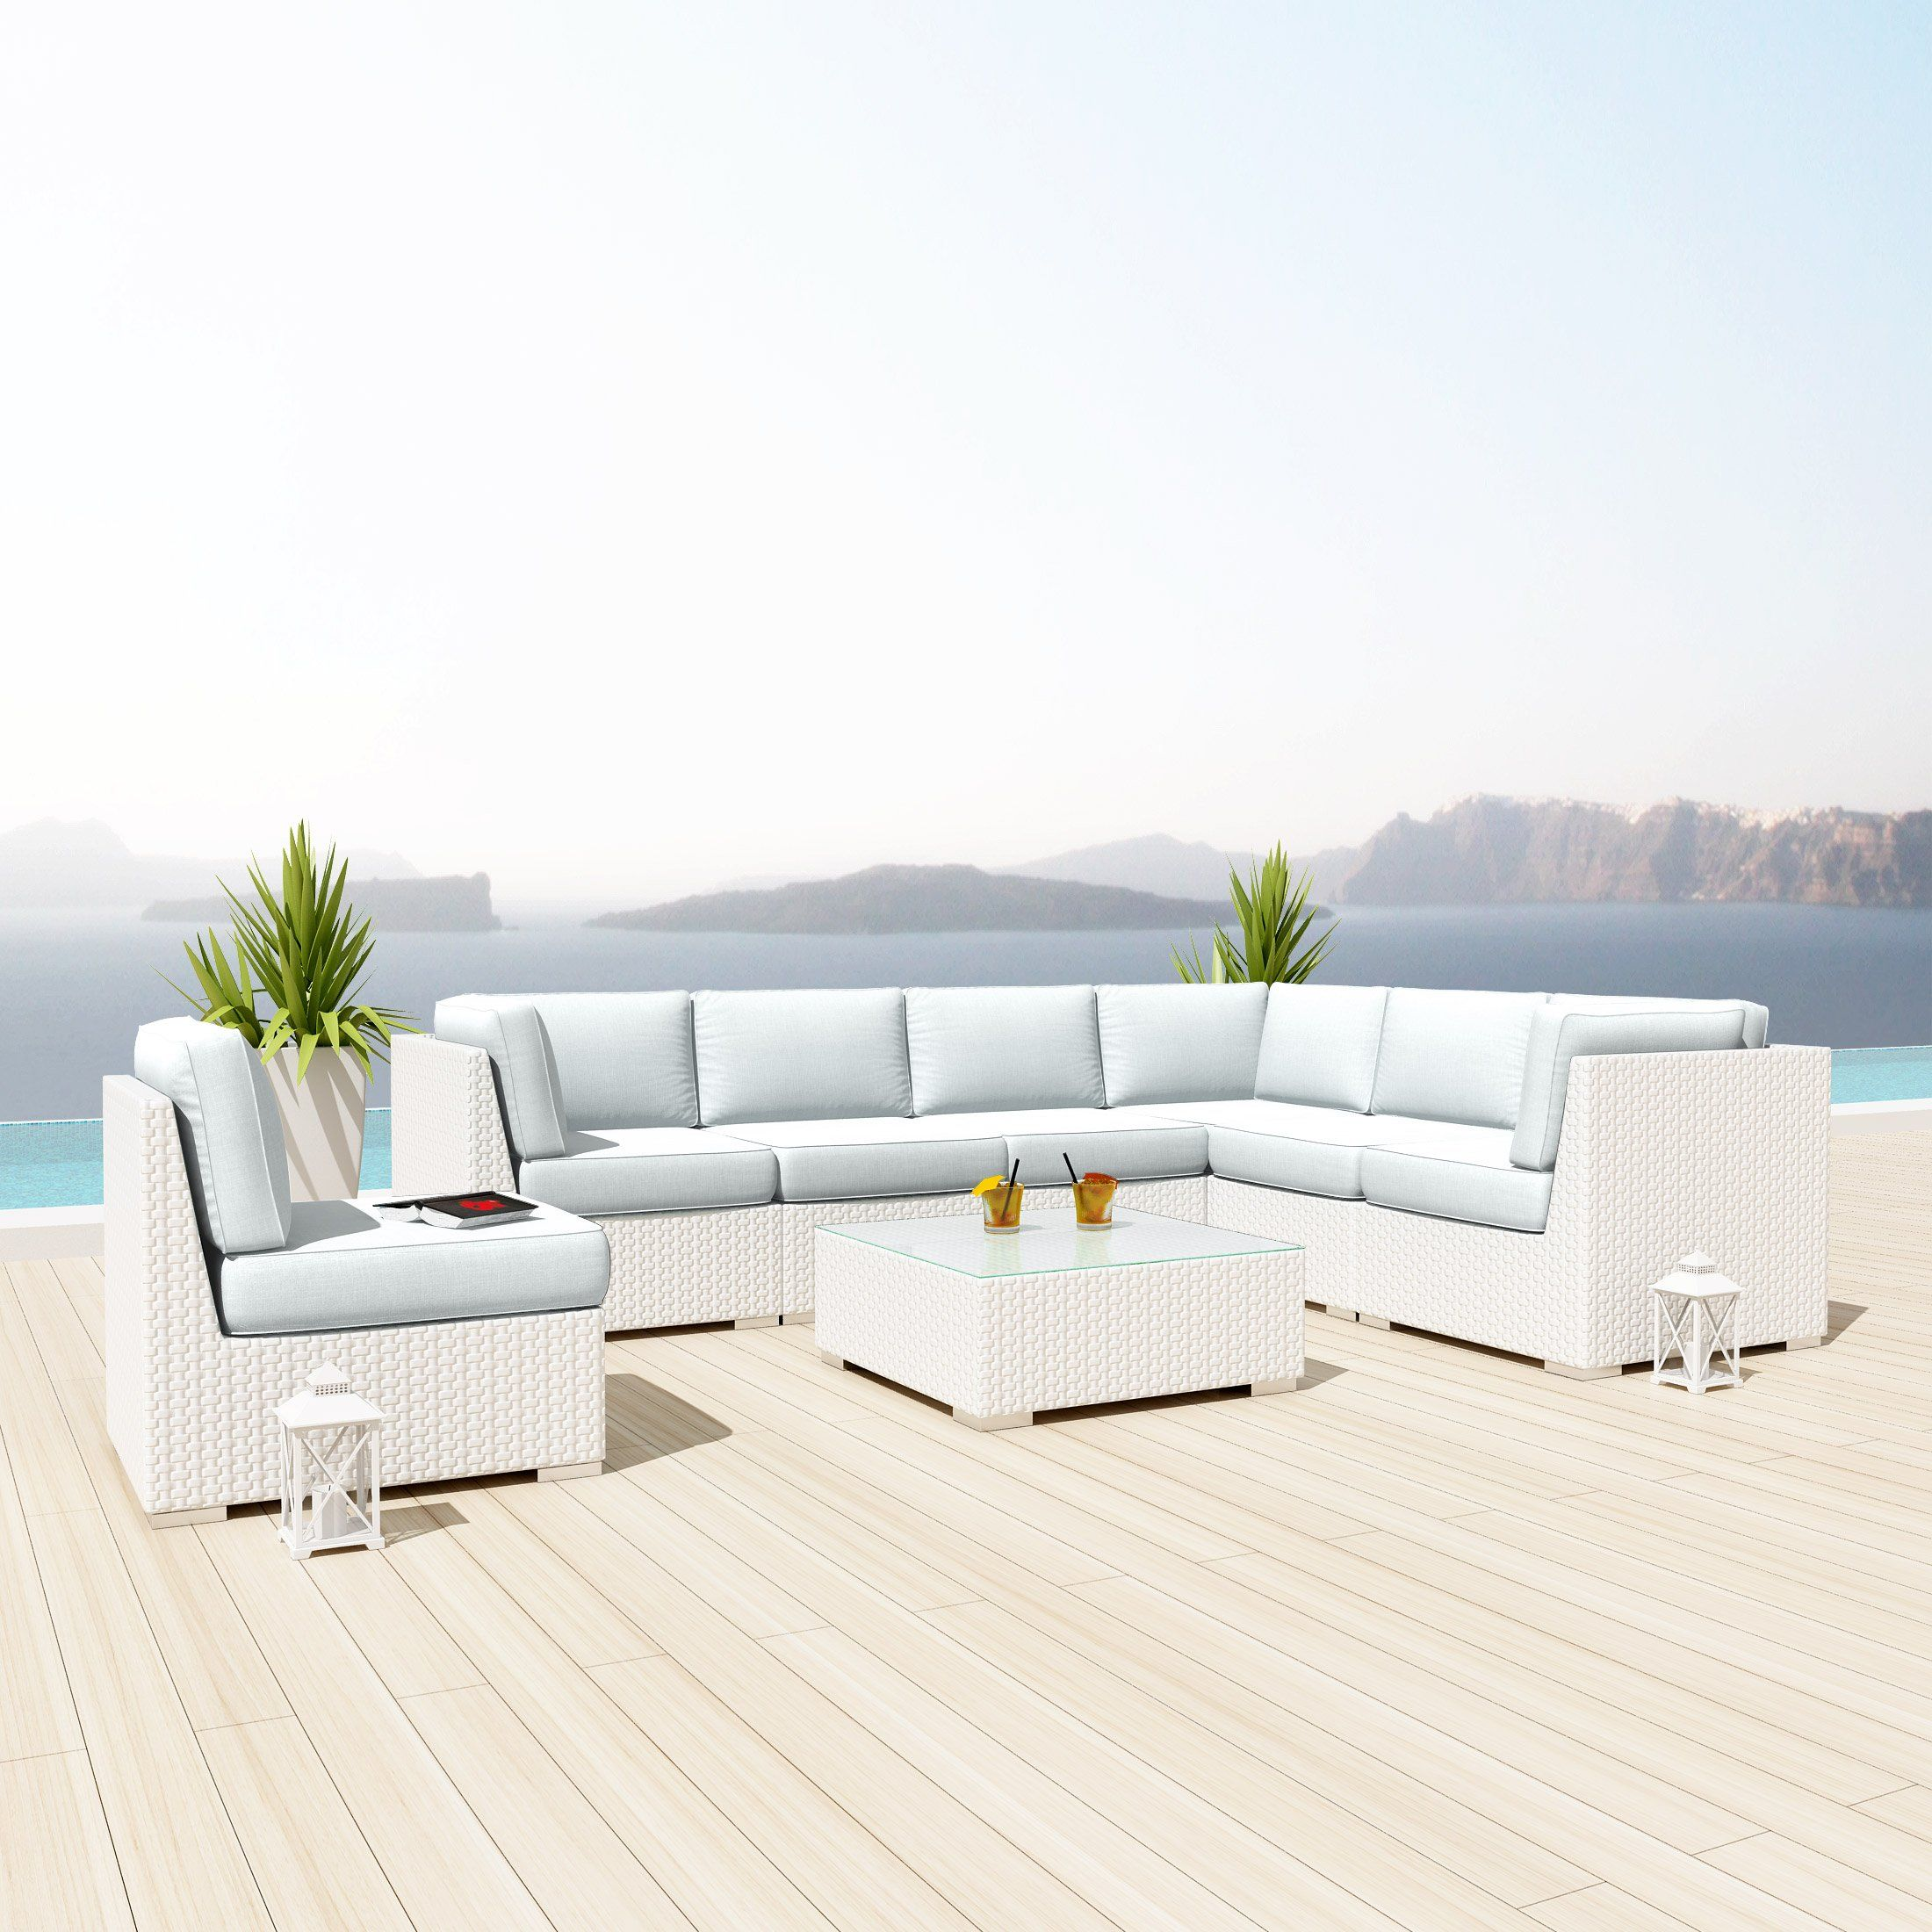 Enjoyable New Uduka Kahlo 8 Pcs Outdoor Off White Sectional Patio Unemploymentrelief Wooden Chair Designs For Living Room Unemploymentrelieforg